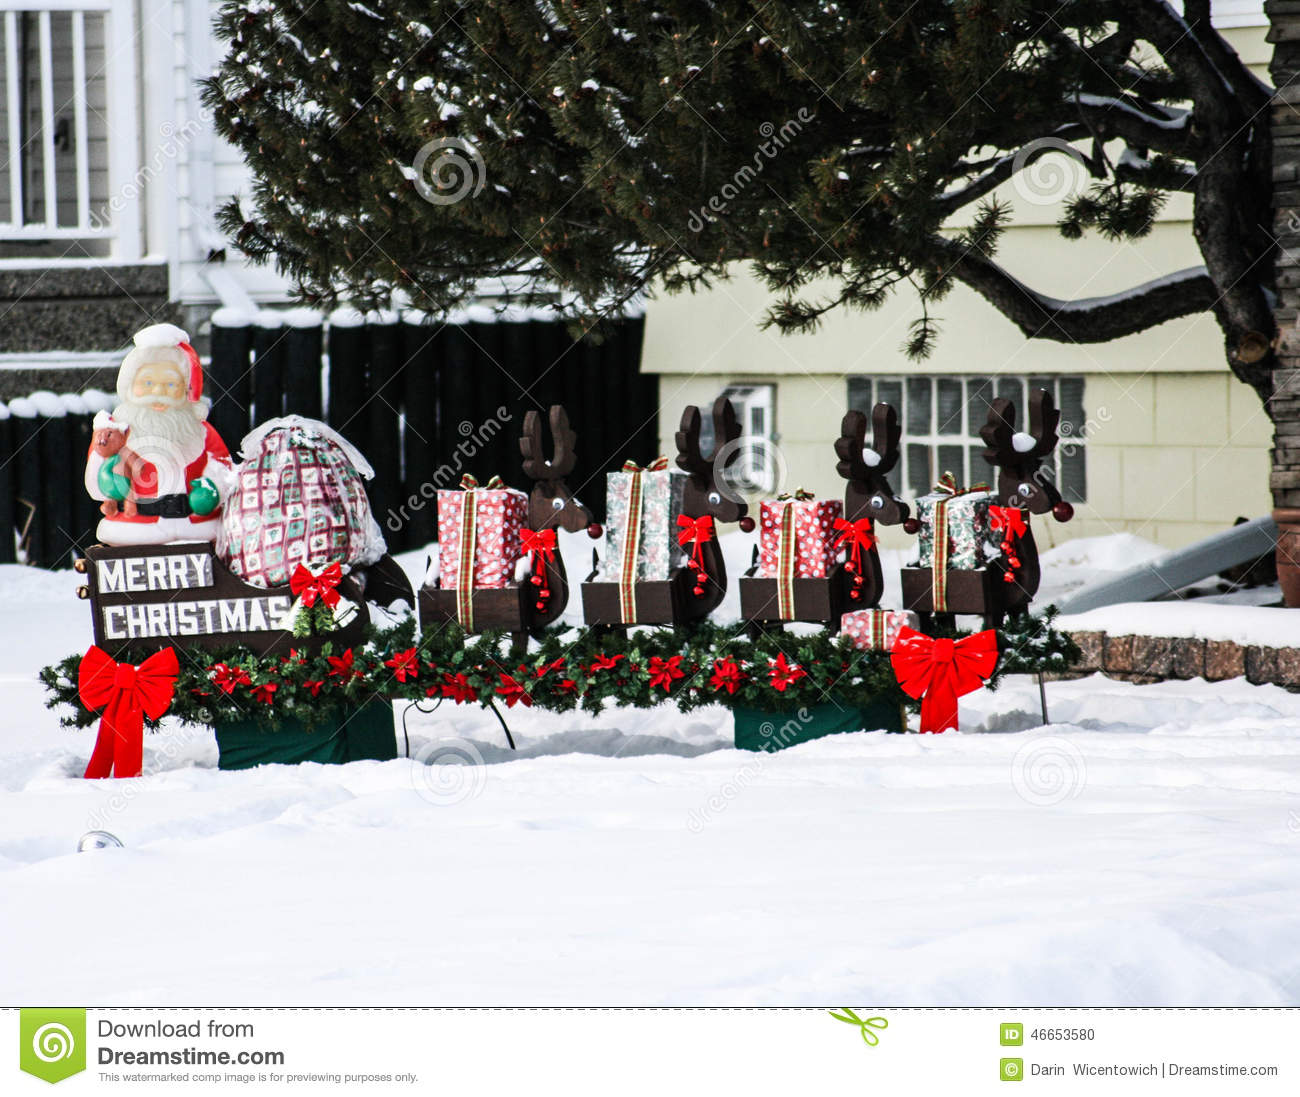 Santa Claus Lawn Decorations: Santa And Sleigh Lawn Decoration Stock Photo